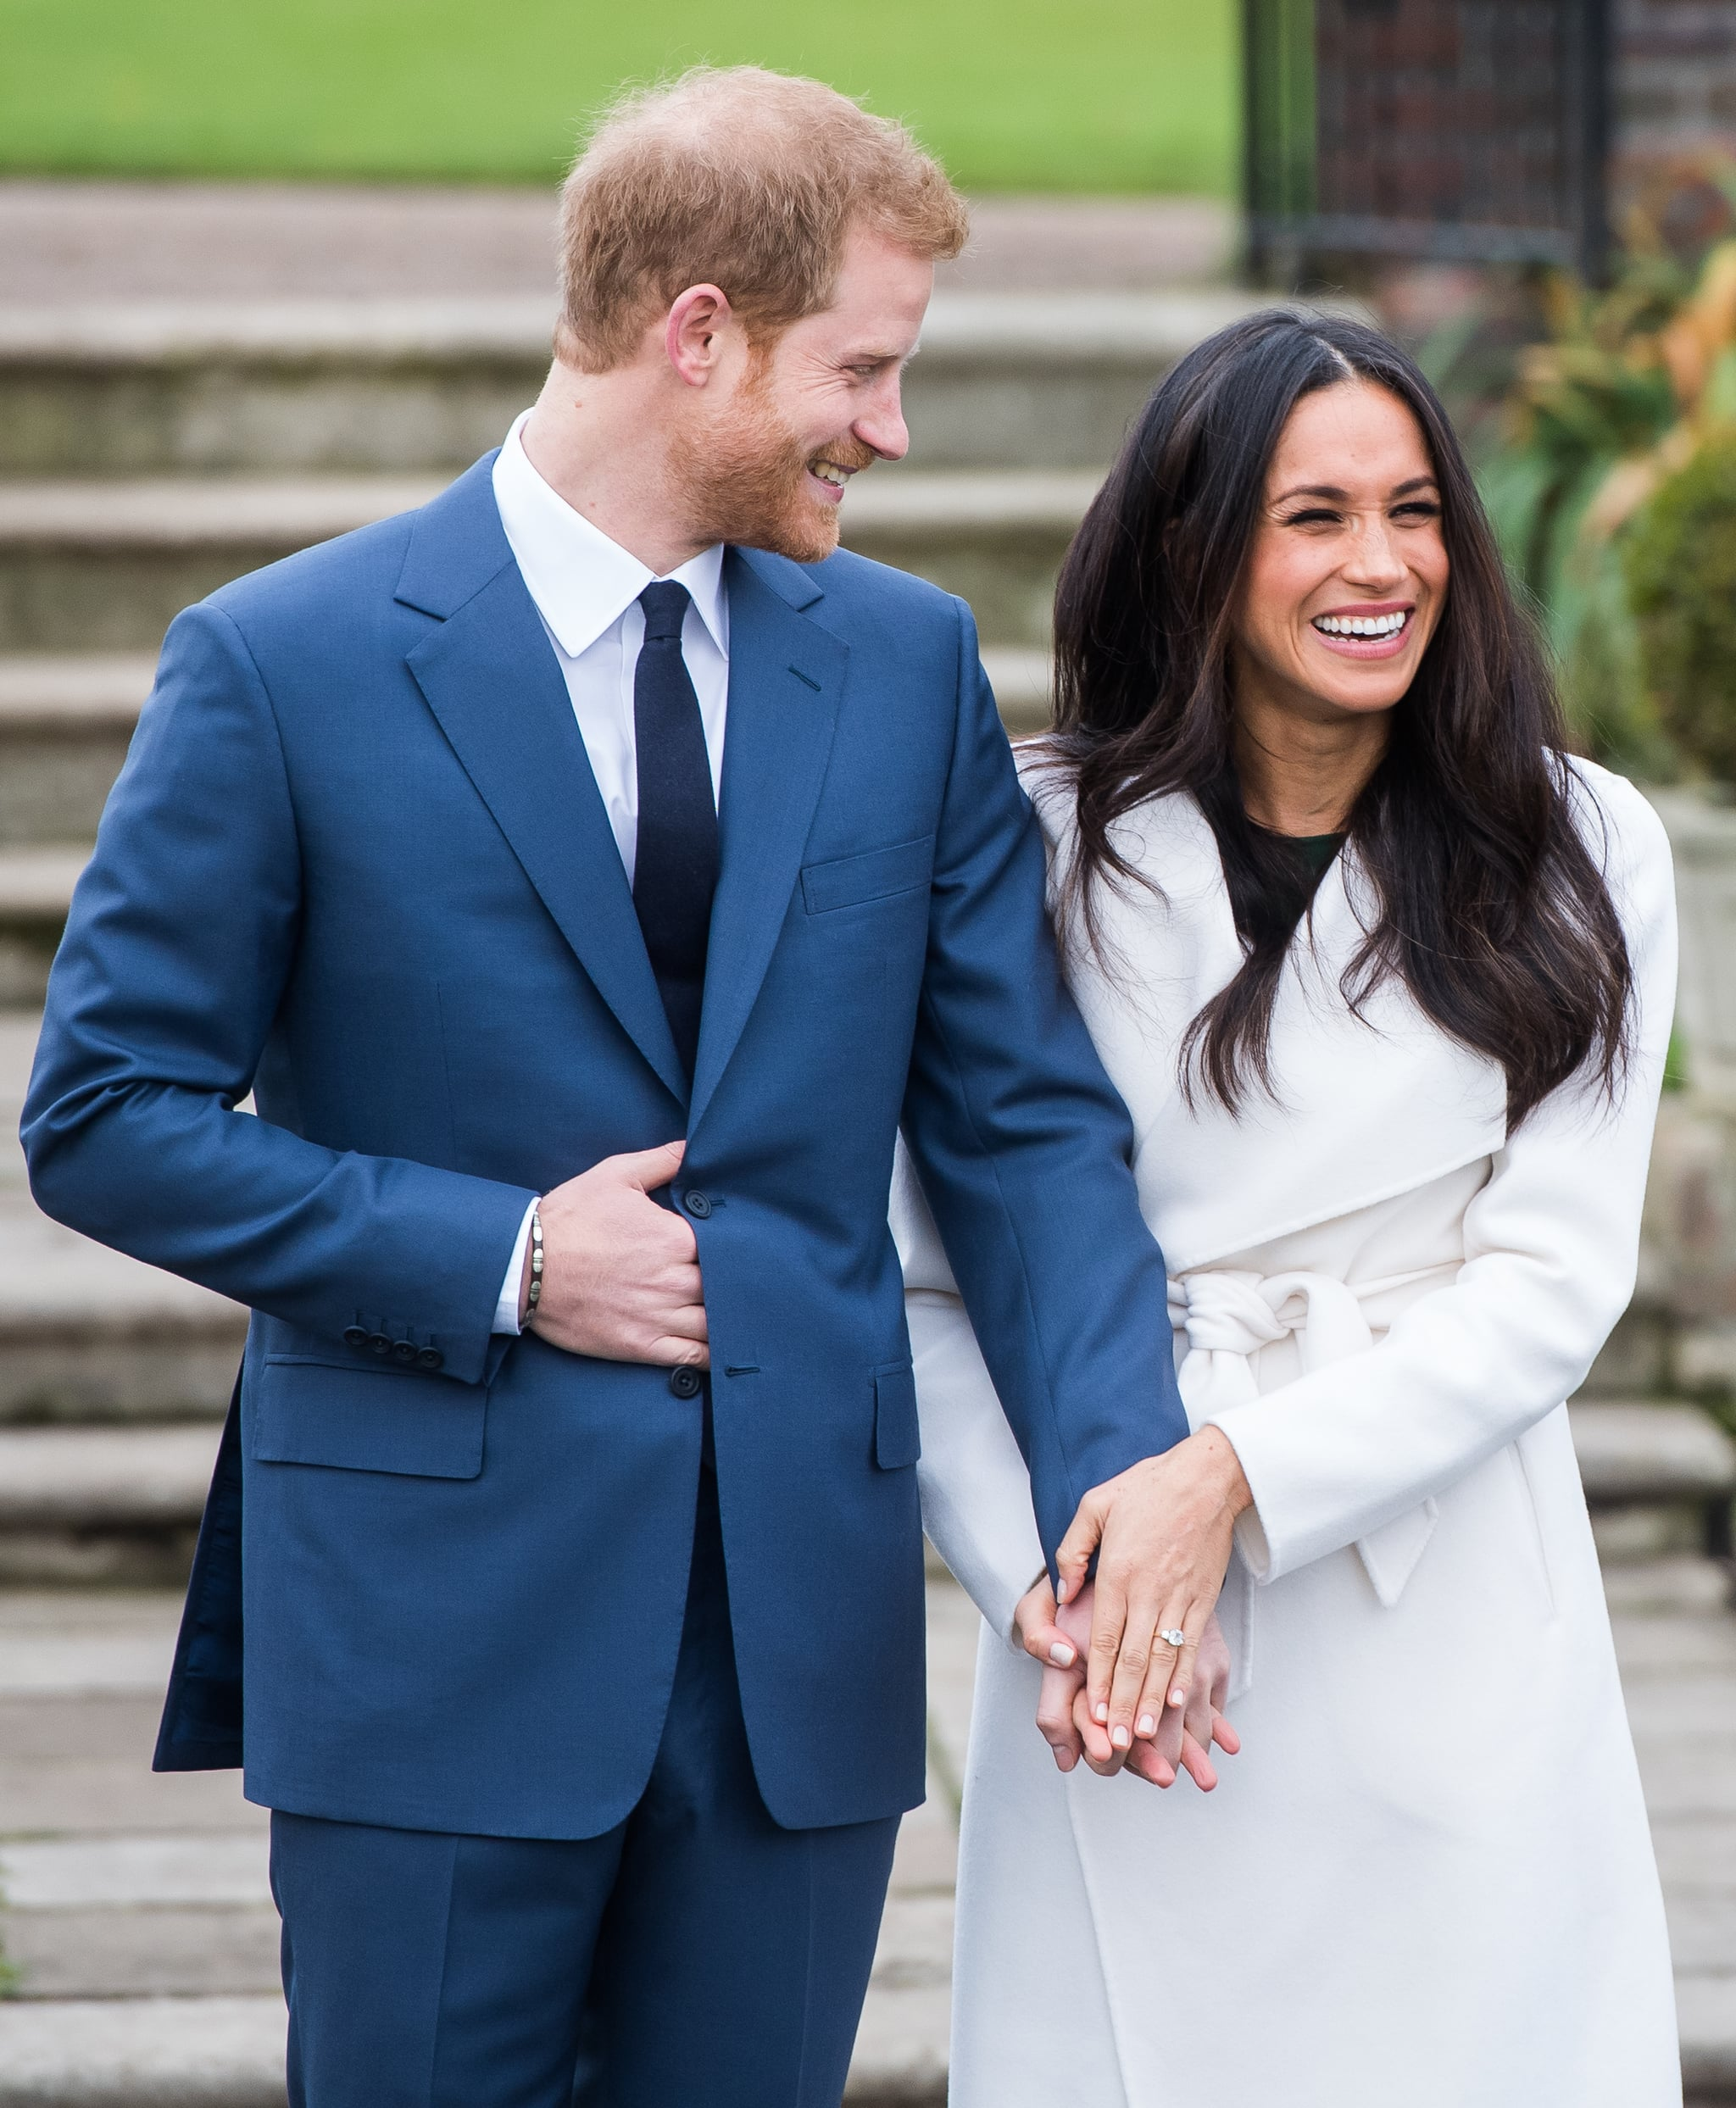 How Did Prince Harry Propose To Meghan Markle?